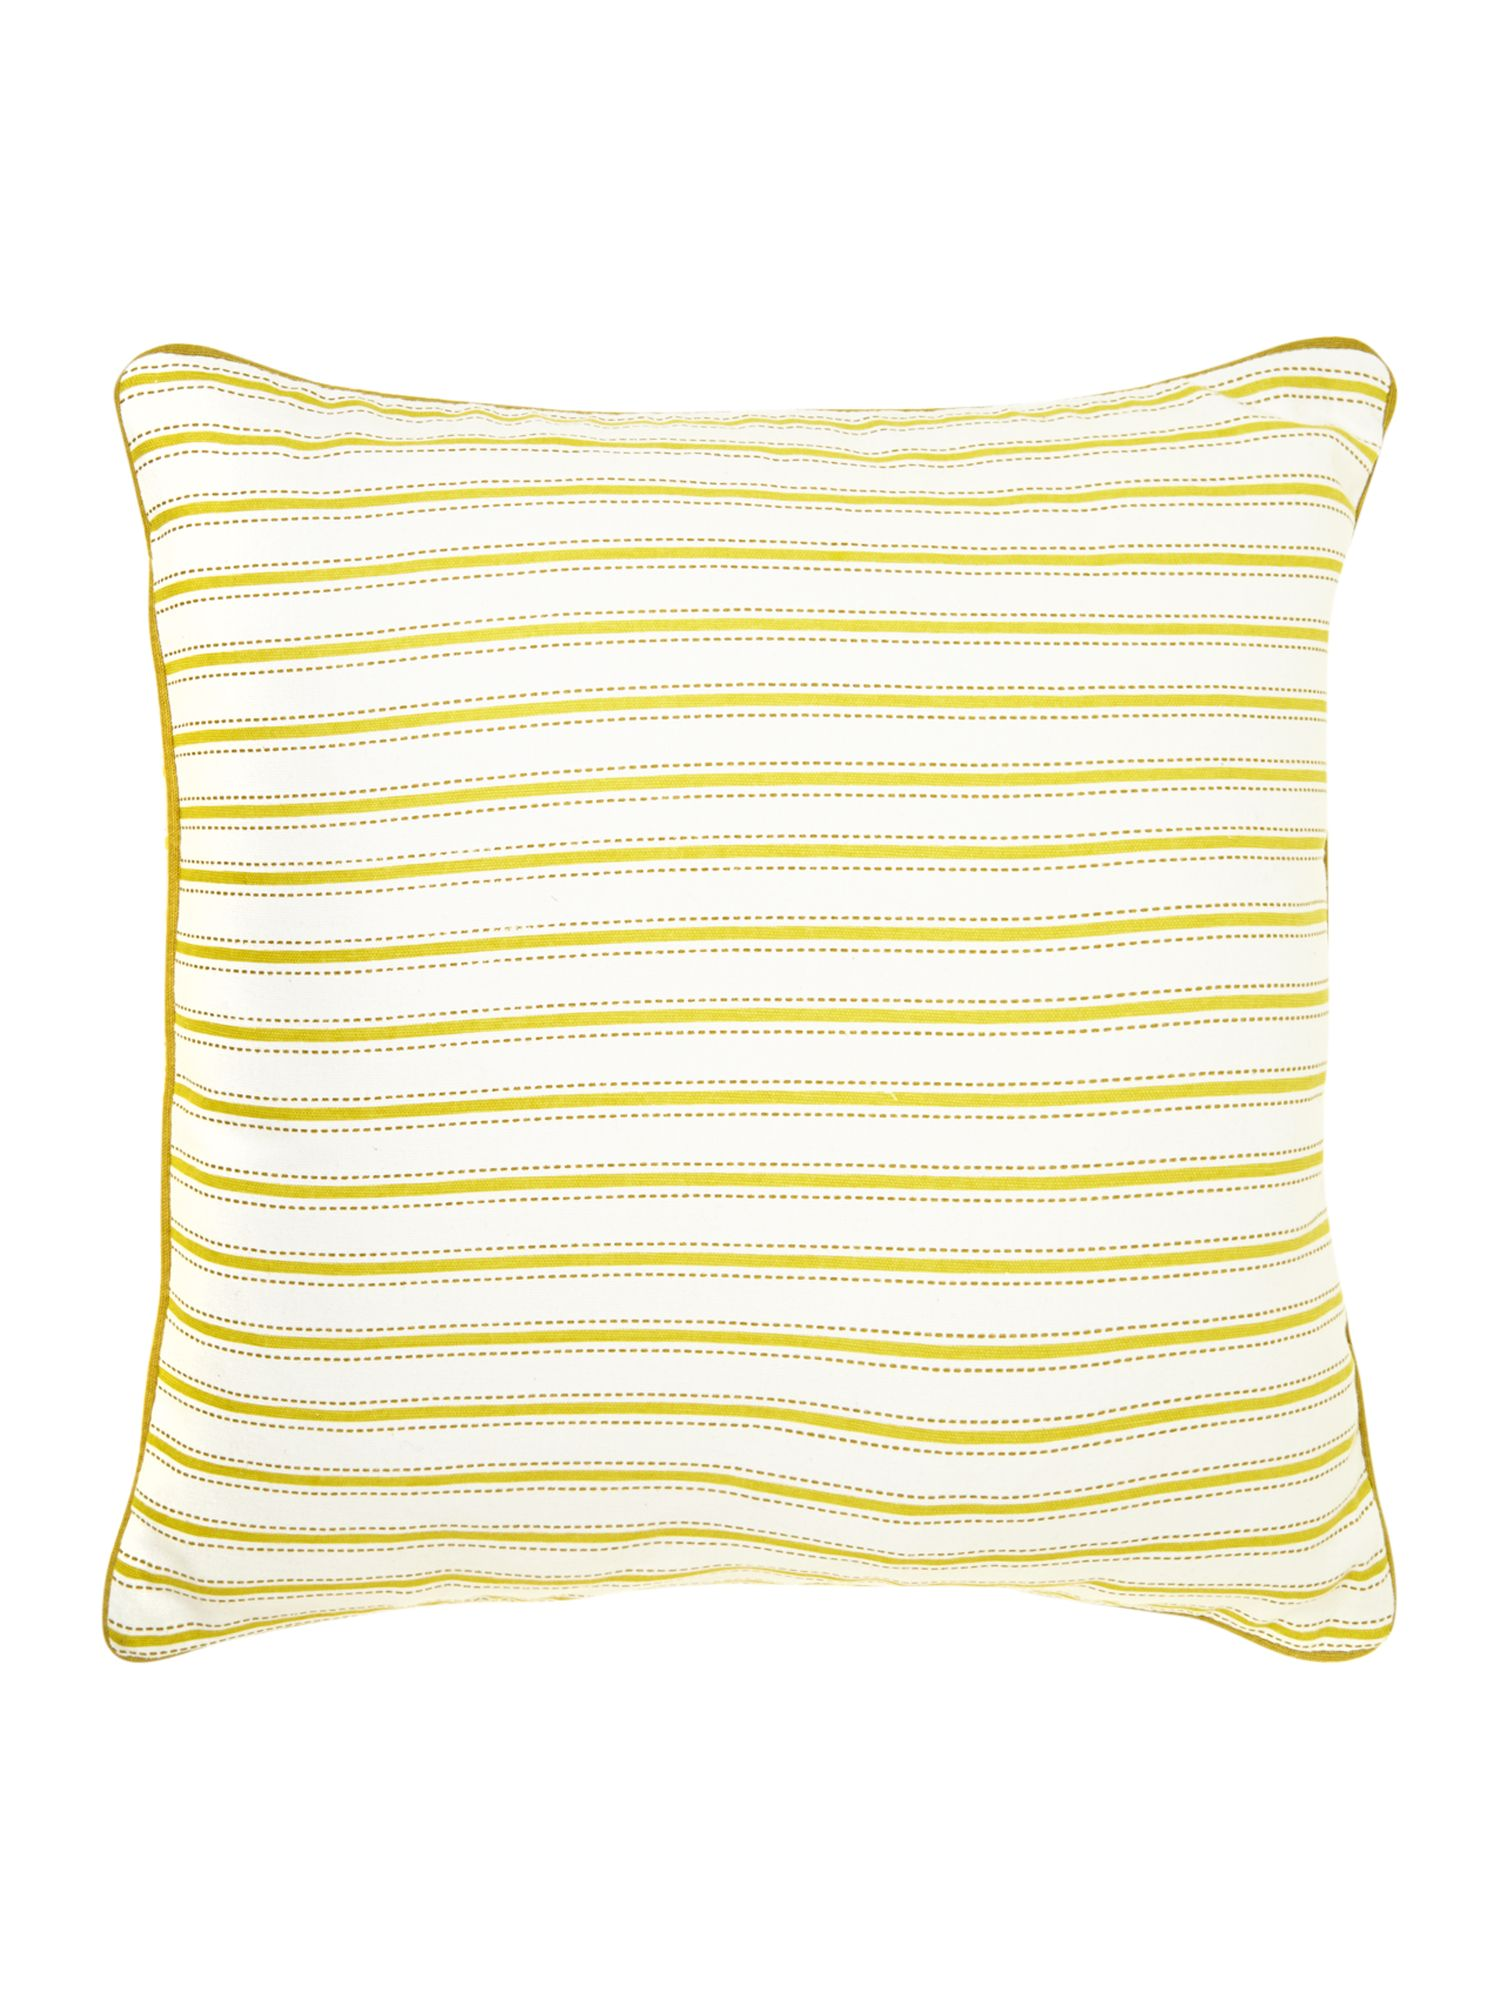 Urban Explorer Stripe design print cushion